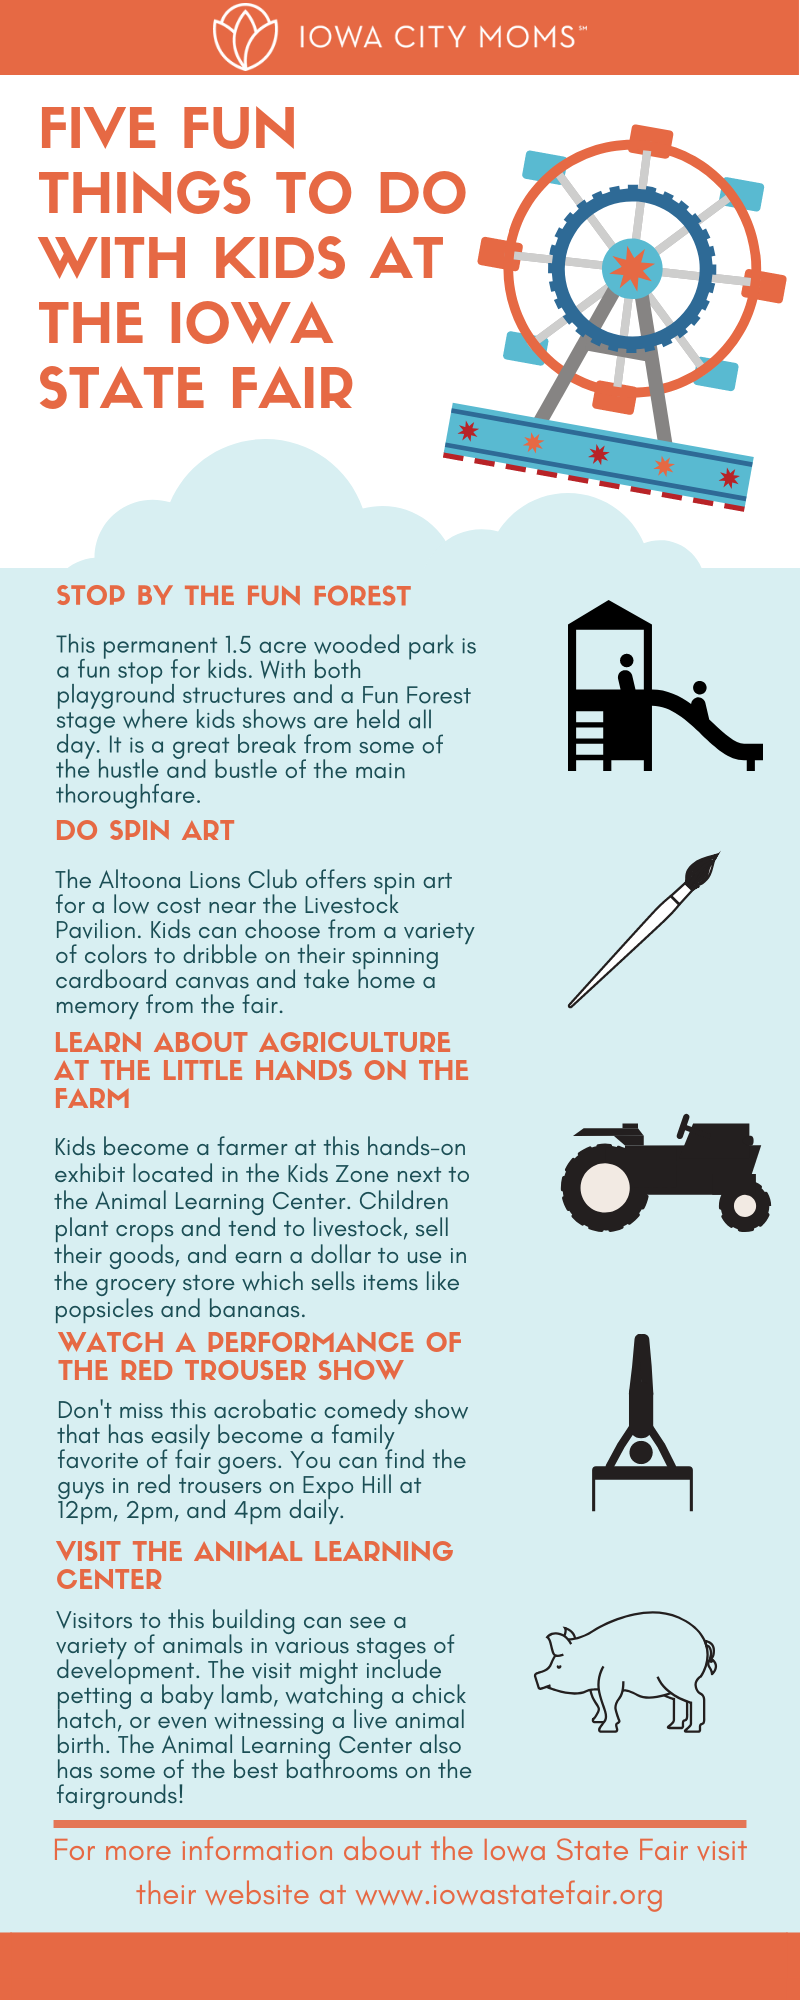 Fun things to do with kids at the Iowa State Fair